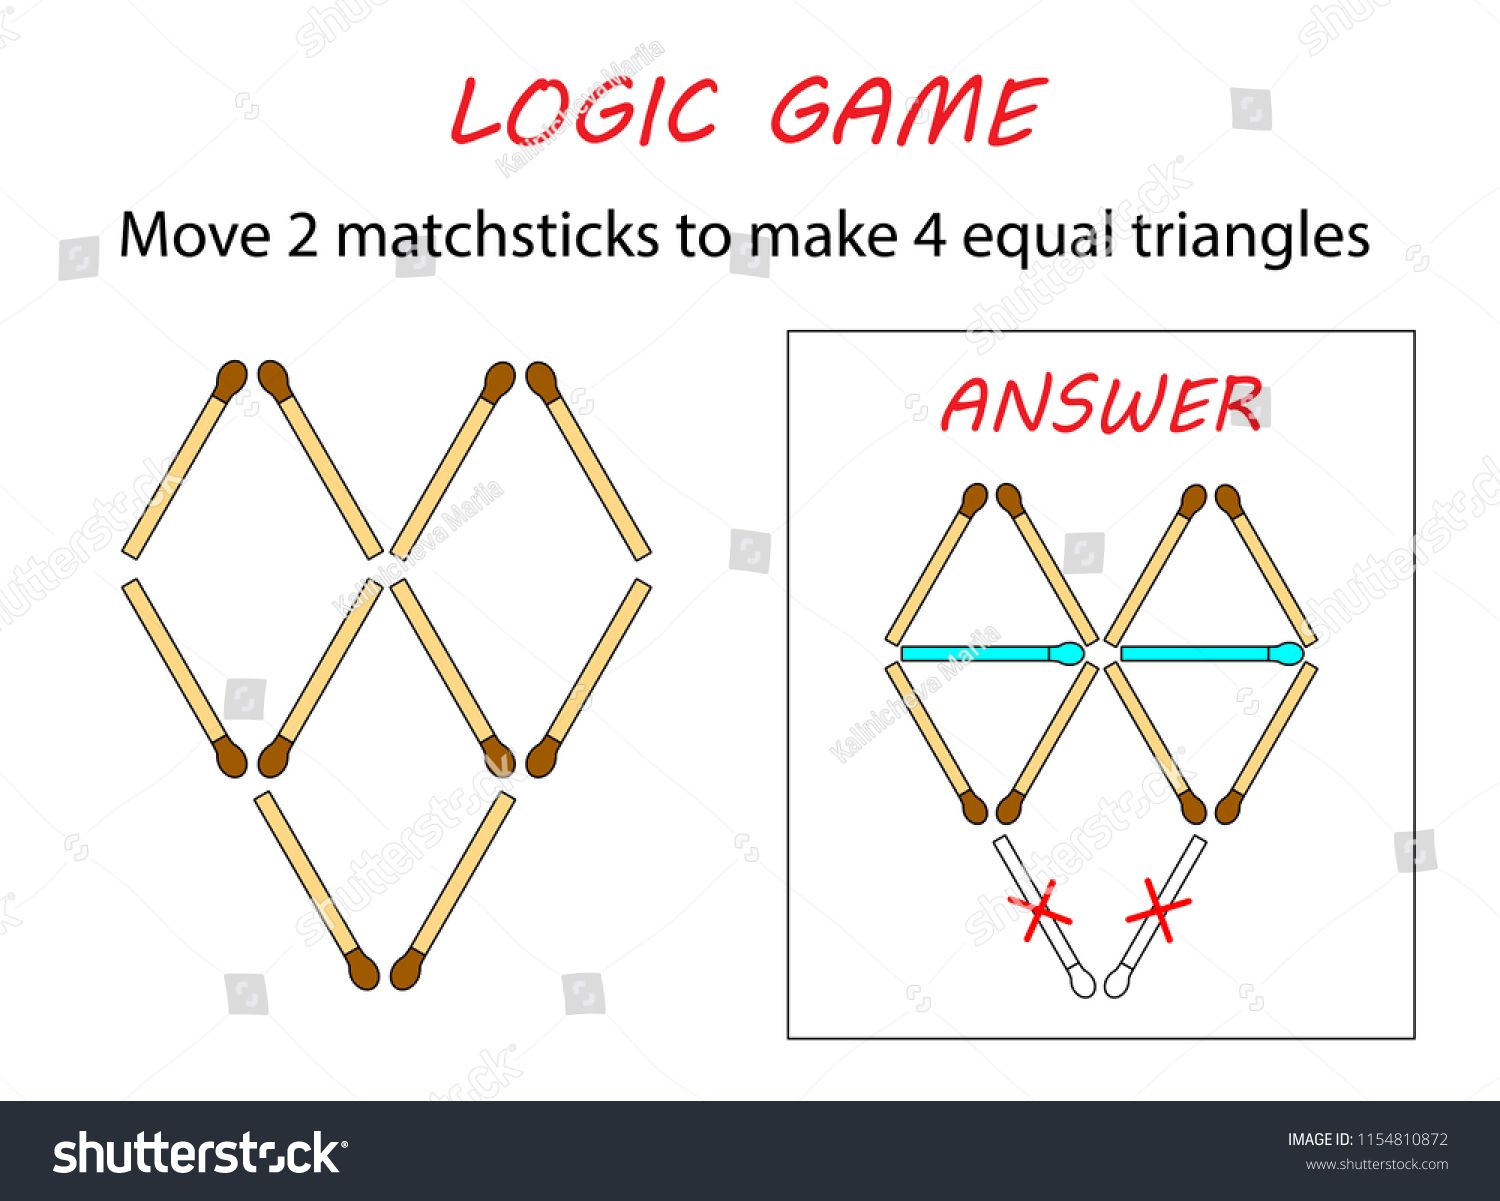 Logic game for kids. Puzzle game with matches. Move 2